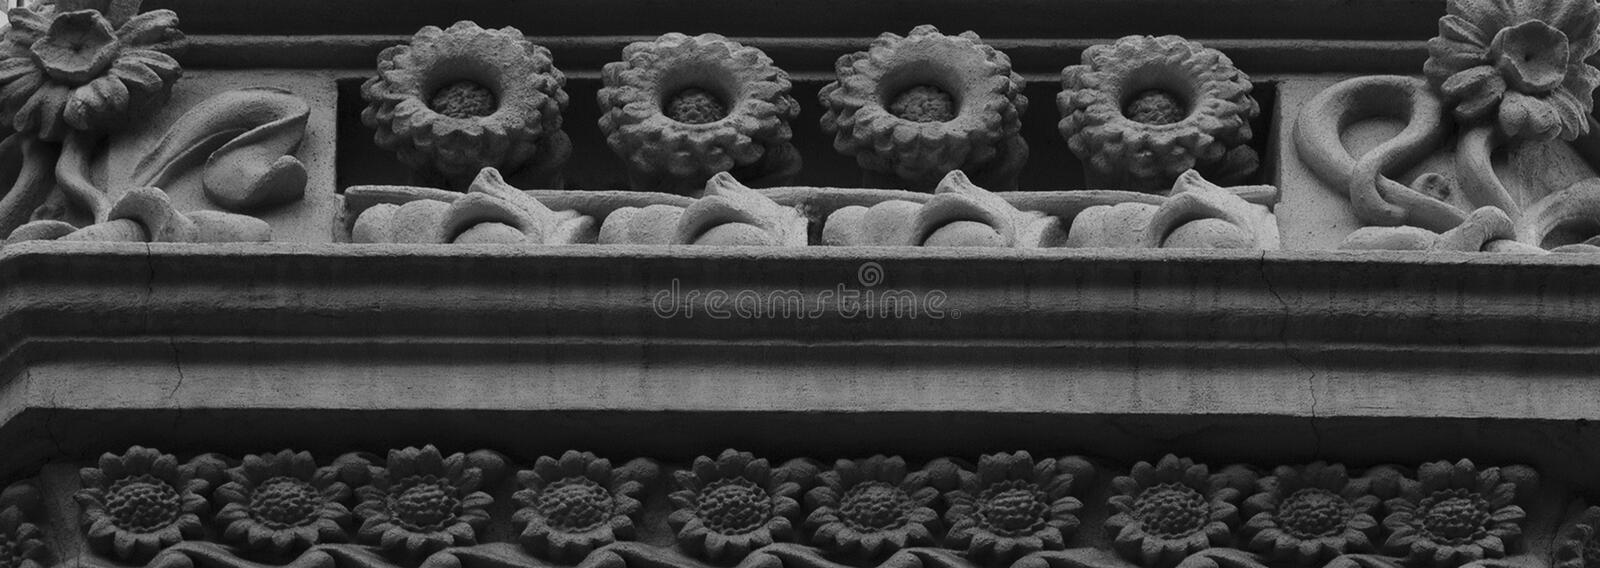 Sunflowers conquering the balcony. Shot in black and white detail on the sculpture on the facade of this historic building representing some characters / animals stock images